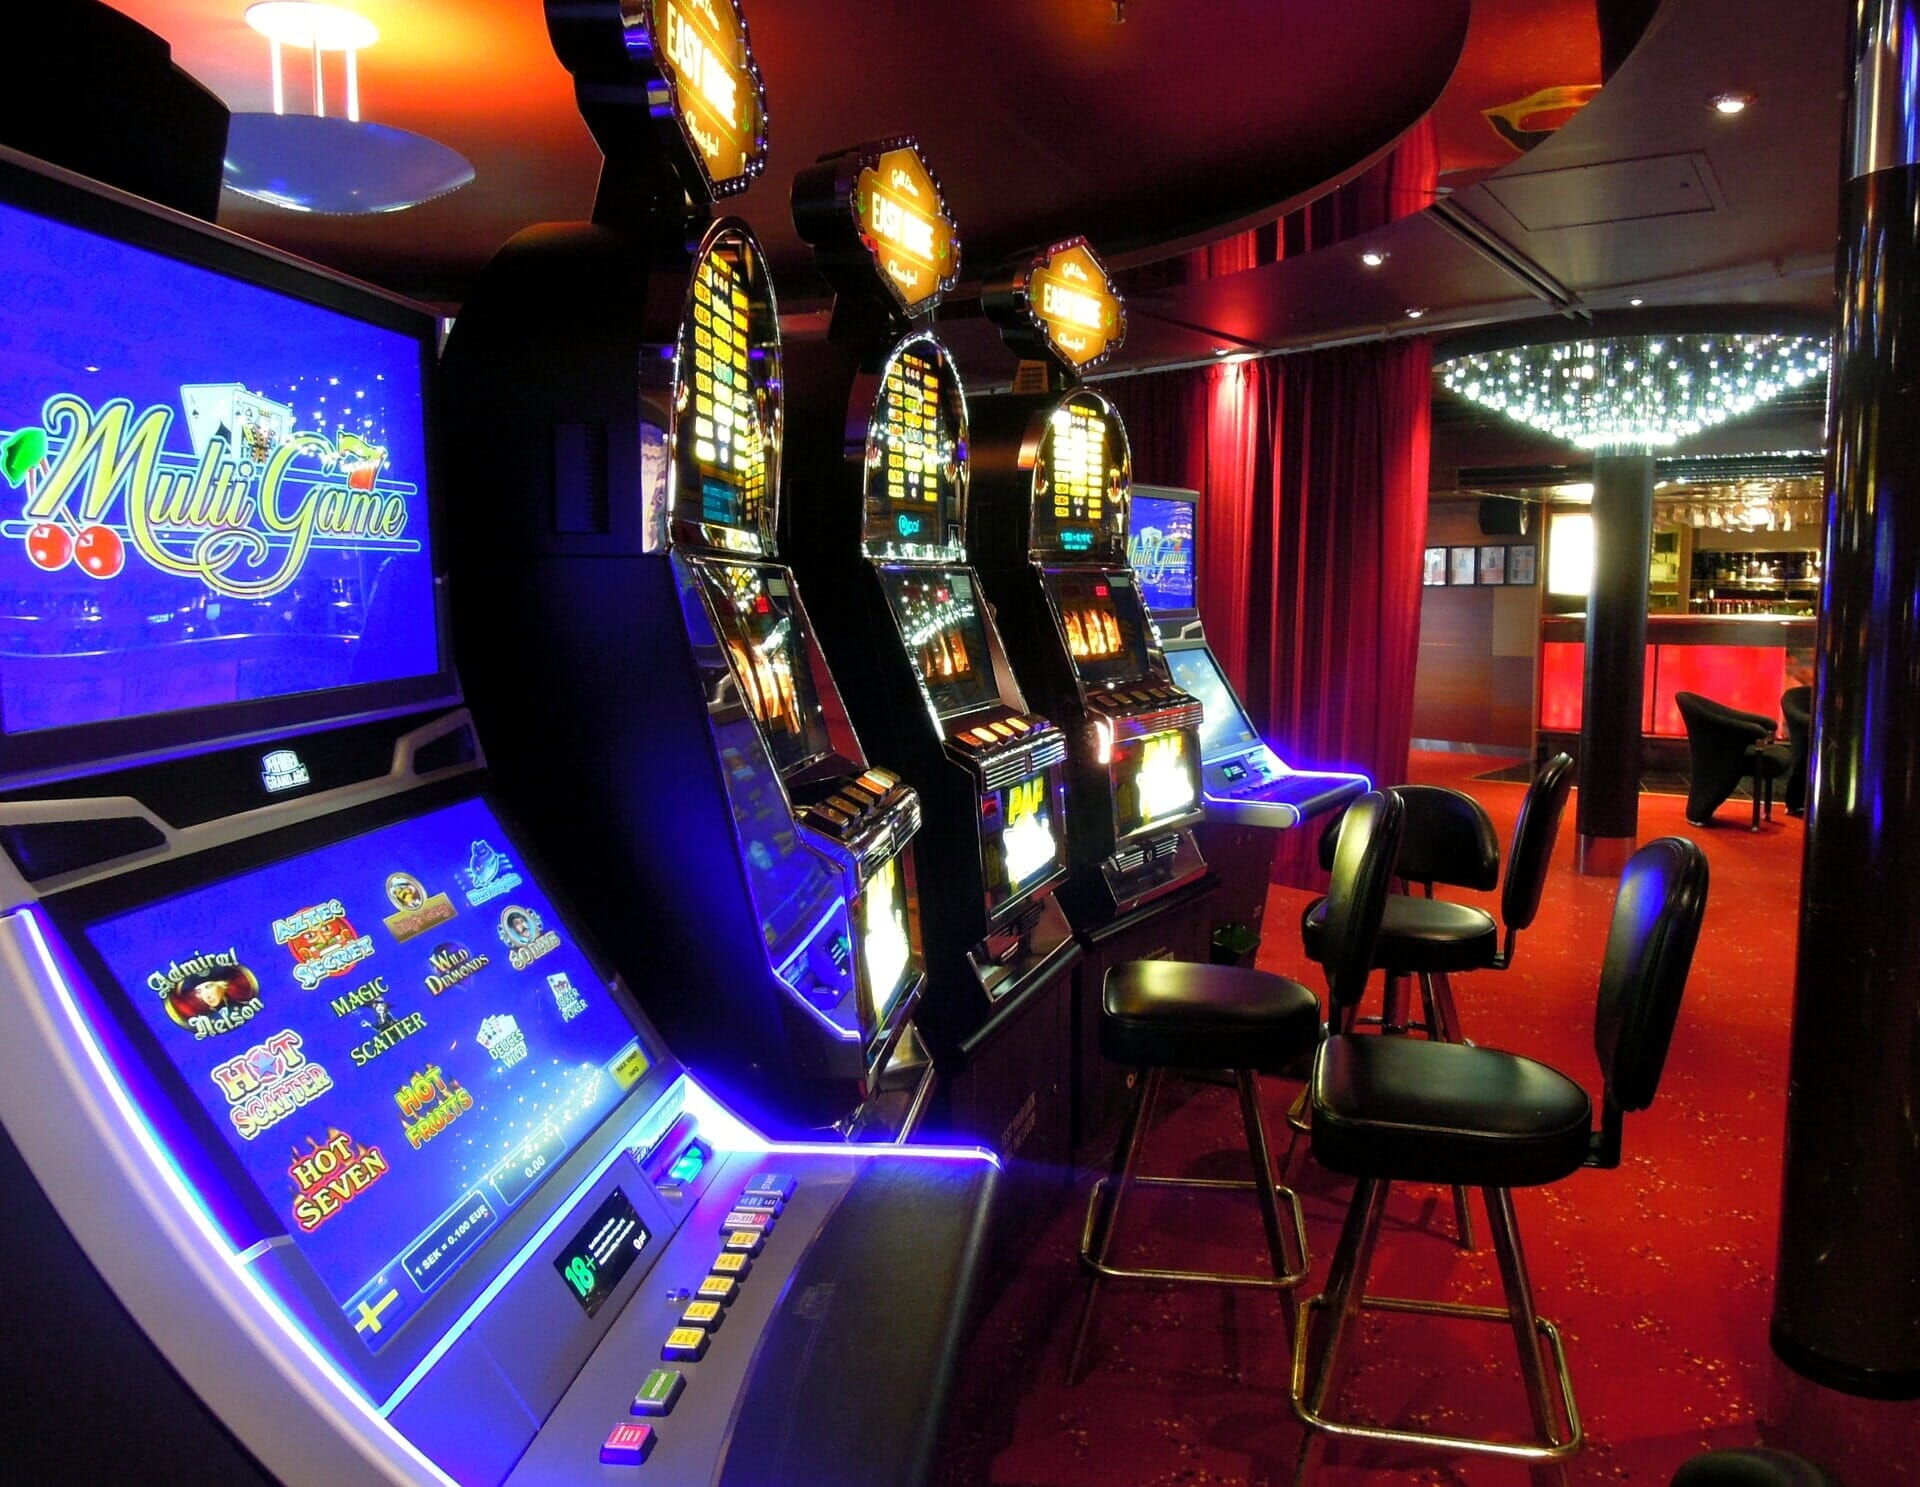 Arredamento per sale slot machine Milano